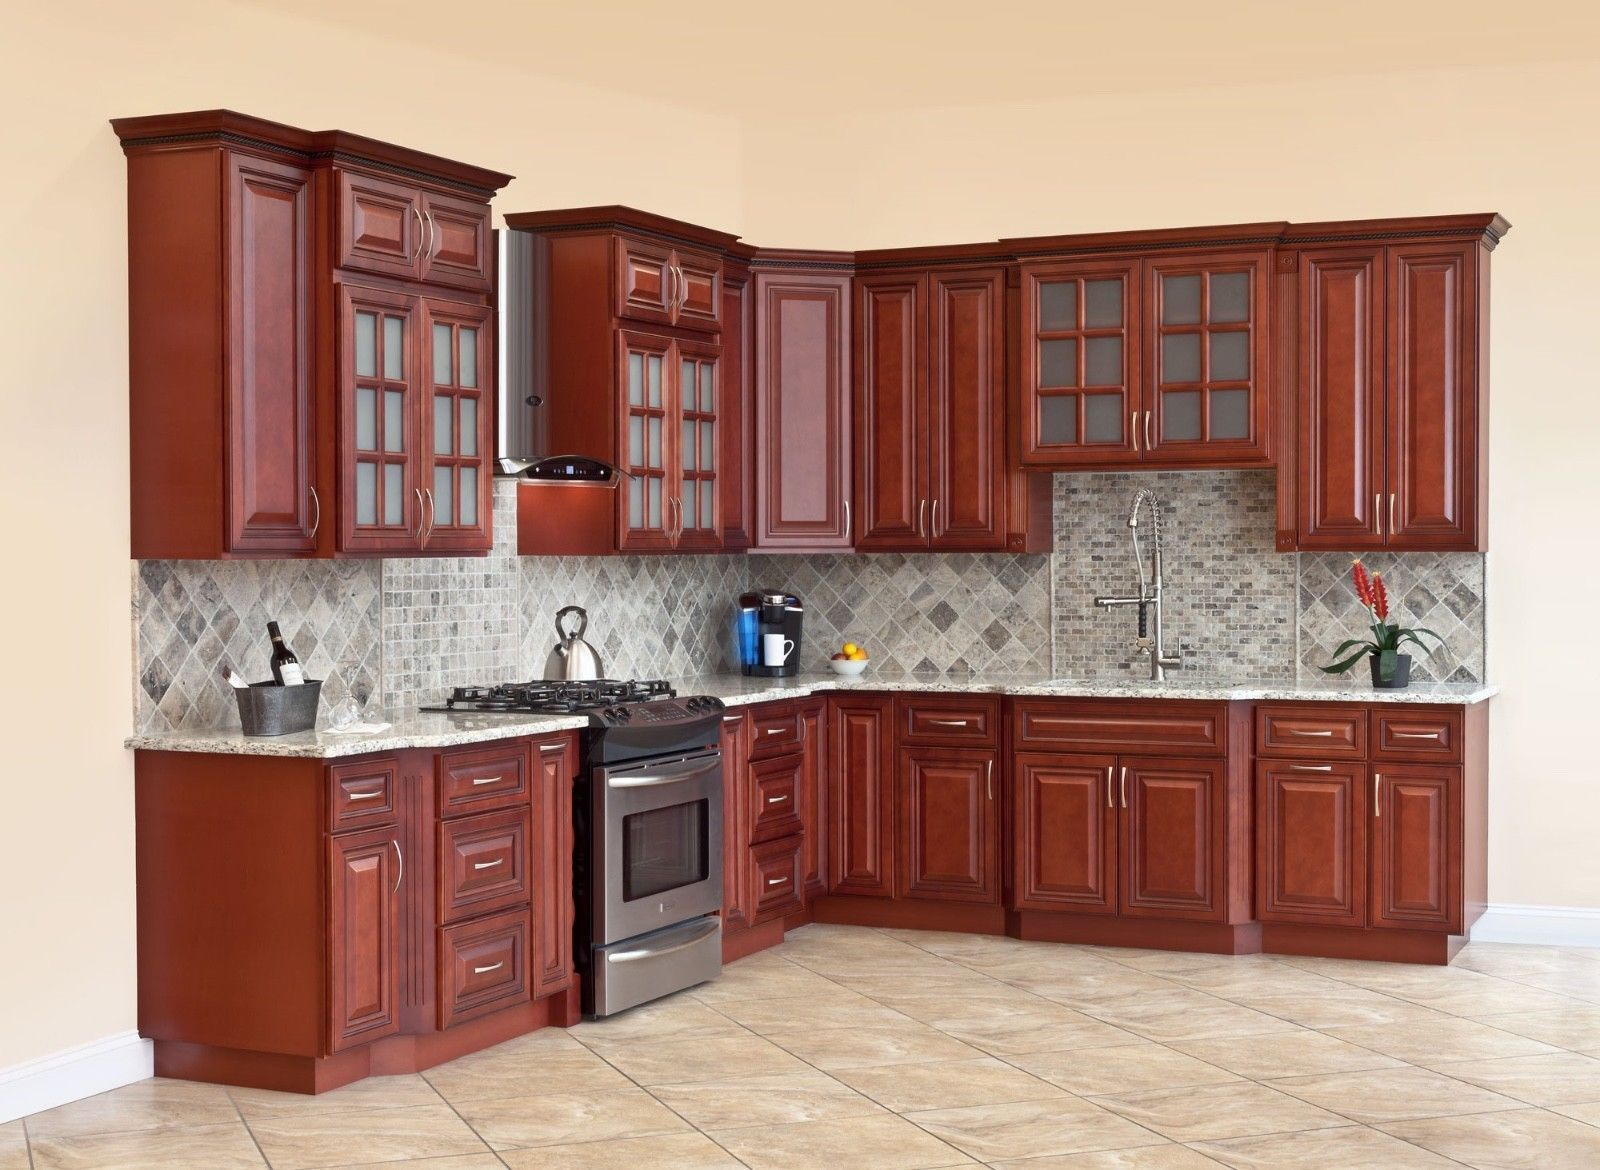 10 10 All Solid Wood Kitchen Cabinets Cherryville Rta 816124022480 Ebay Wood Kitchen Cabinets Solid Wood Kitchens Wood Kitchen